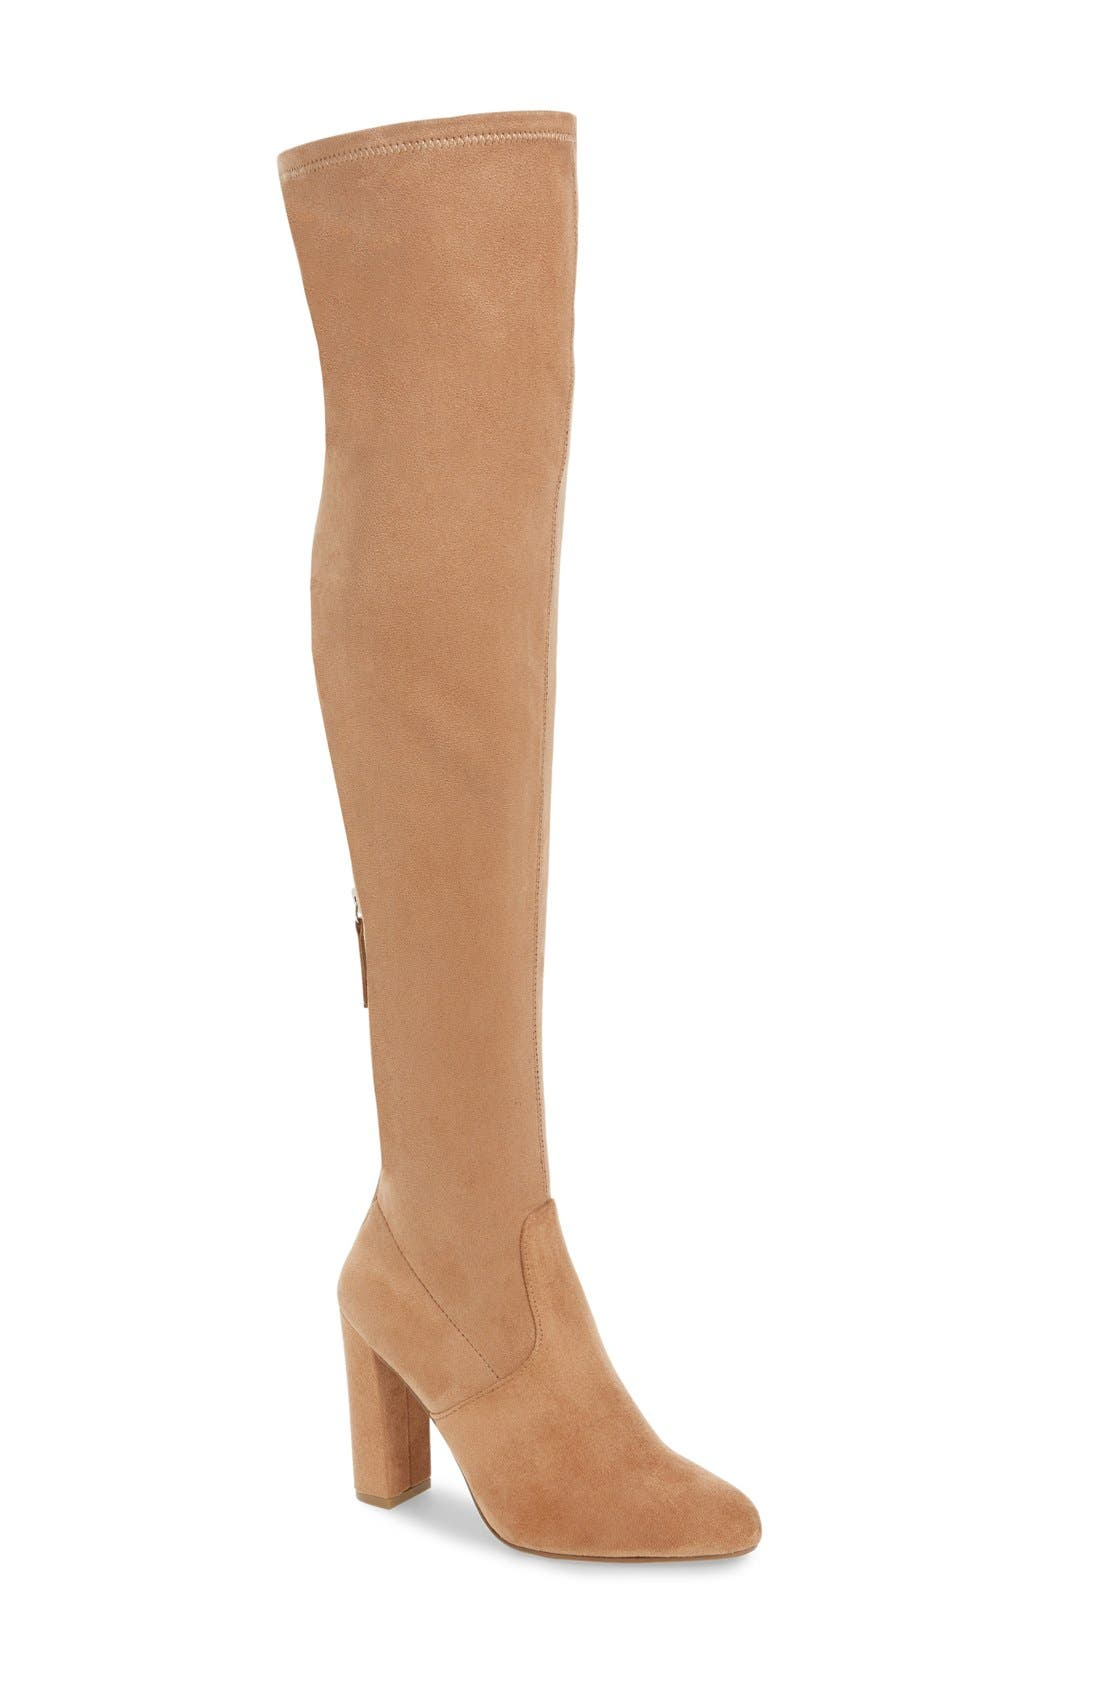 'Emotions' Stretch Over the Knee Boot,                             Main thumbnail 3, color,